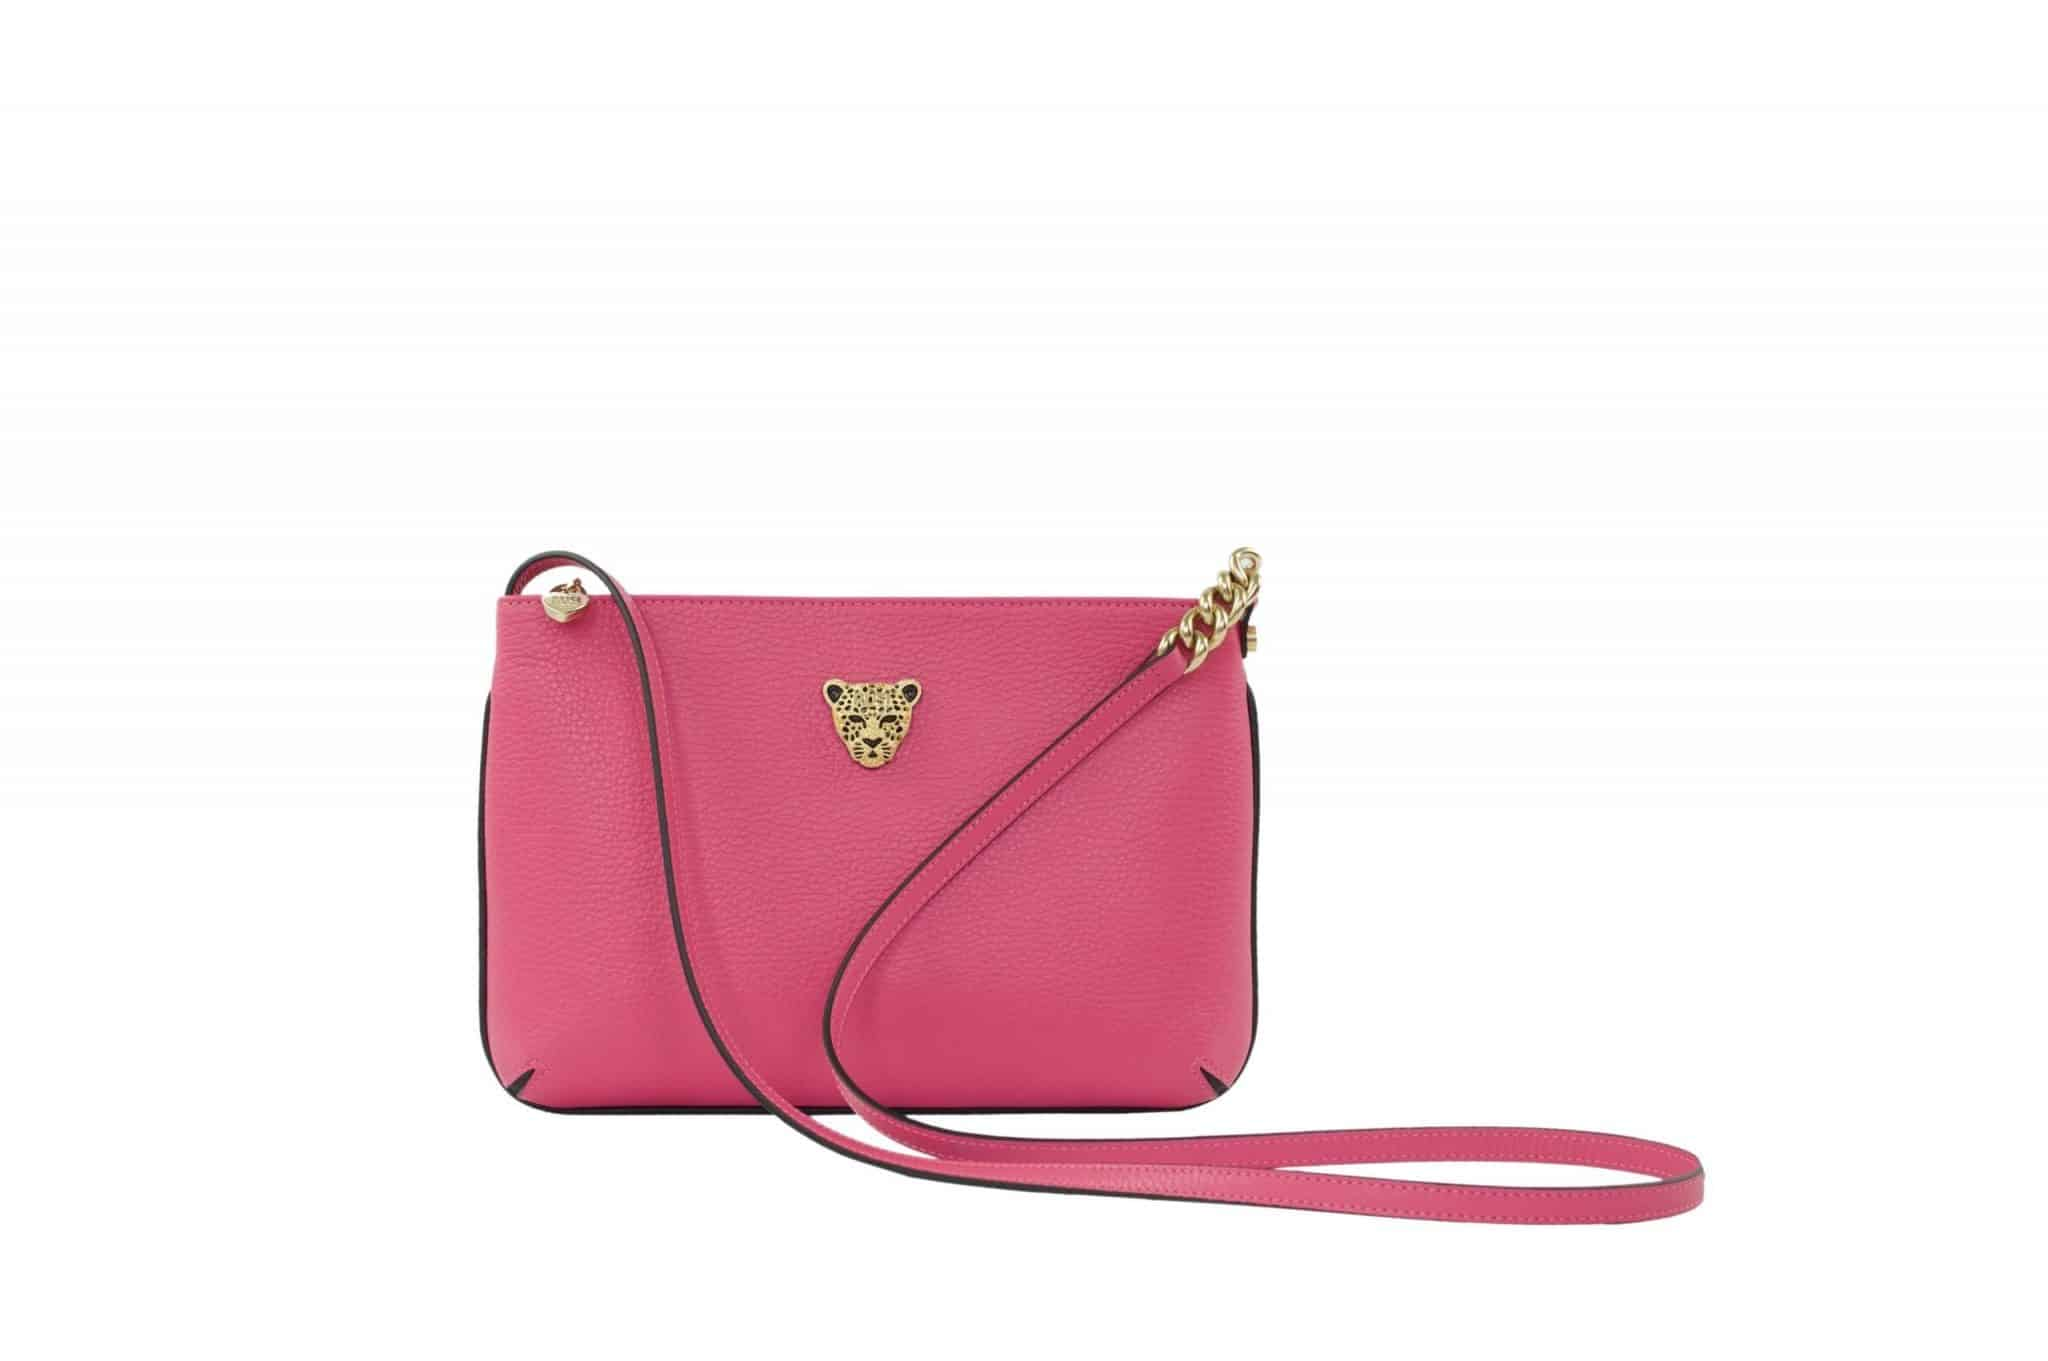 Star 2.0 Cross Body Bag/ Pink with Gold Logo